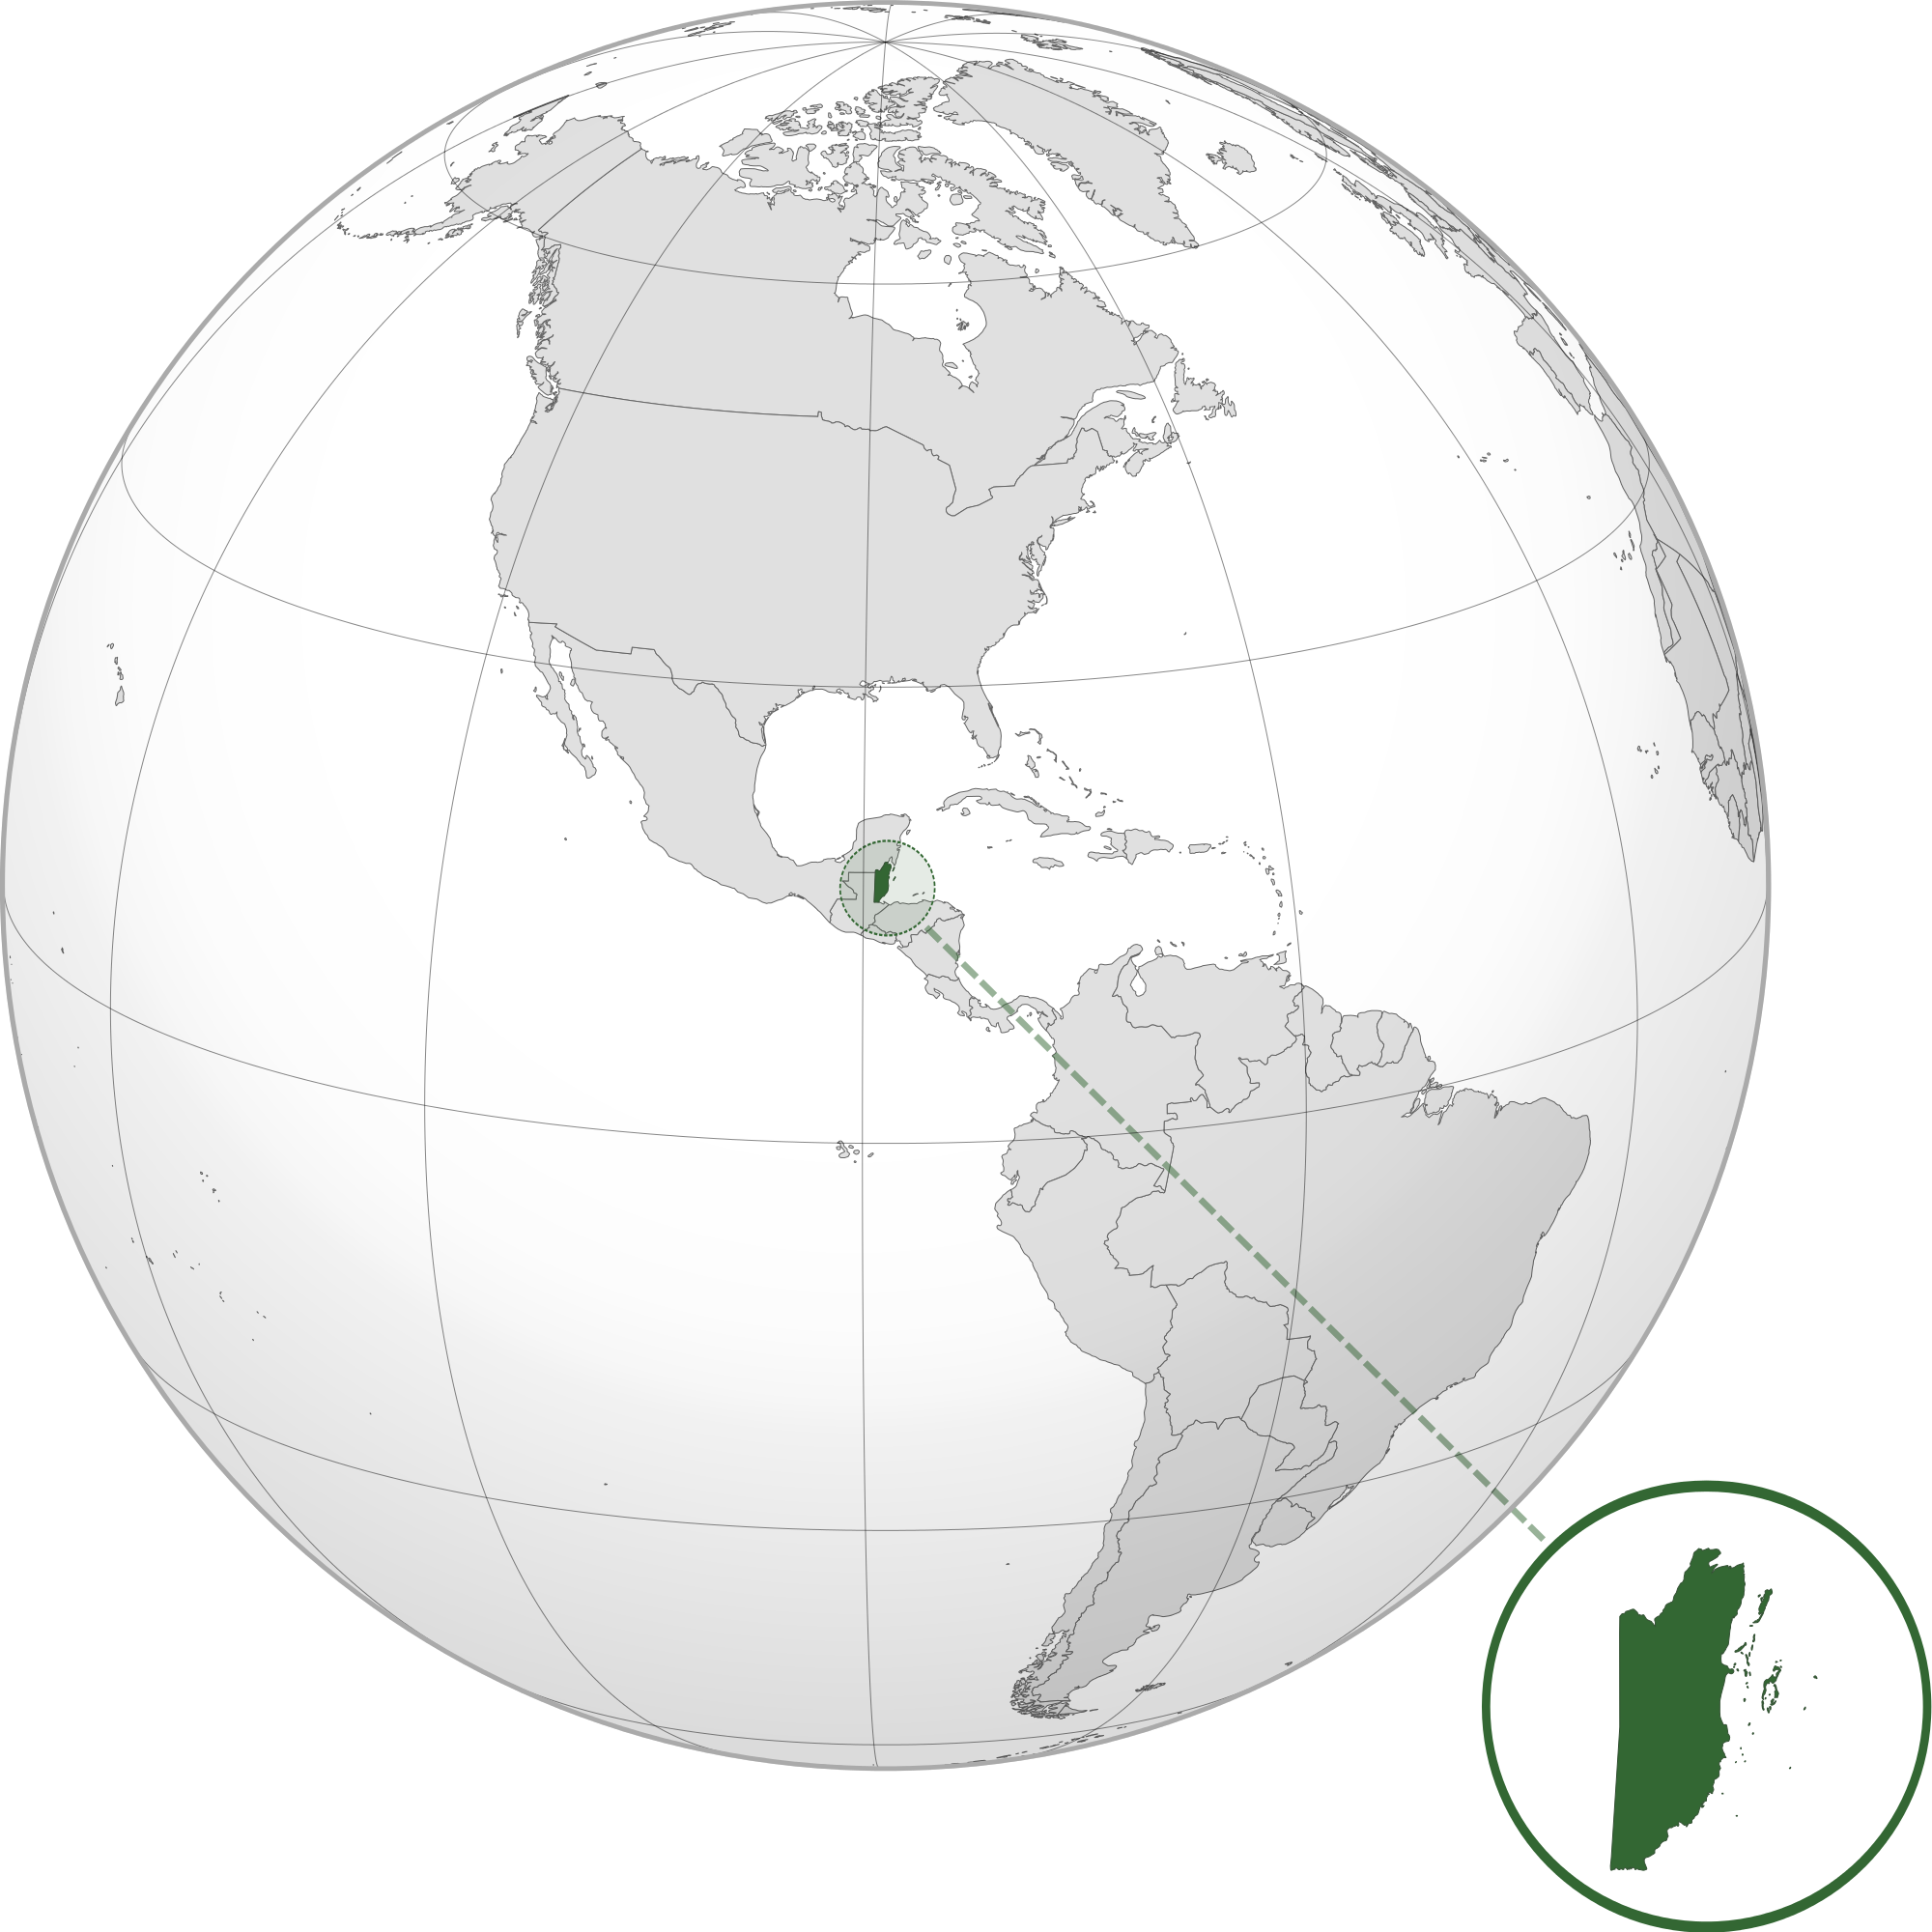 Location of the belize in the World Map